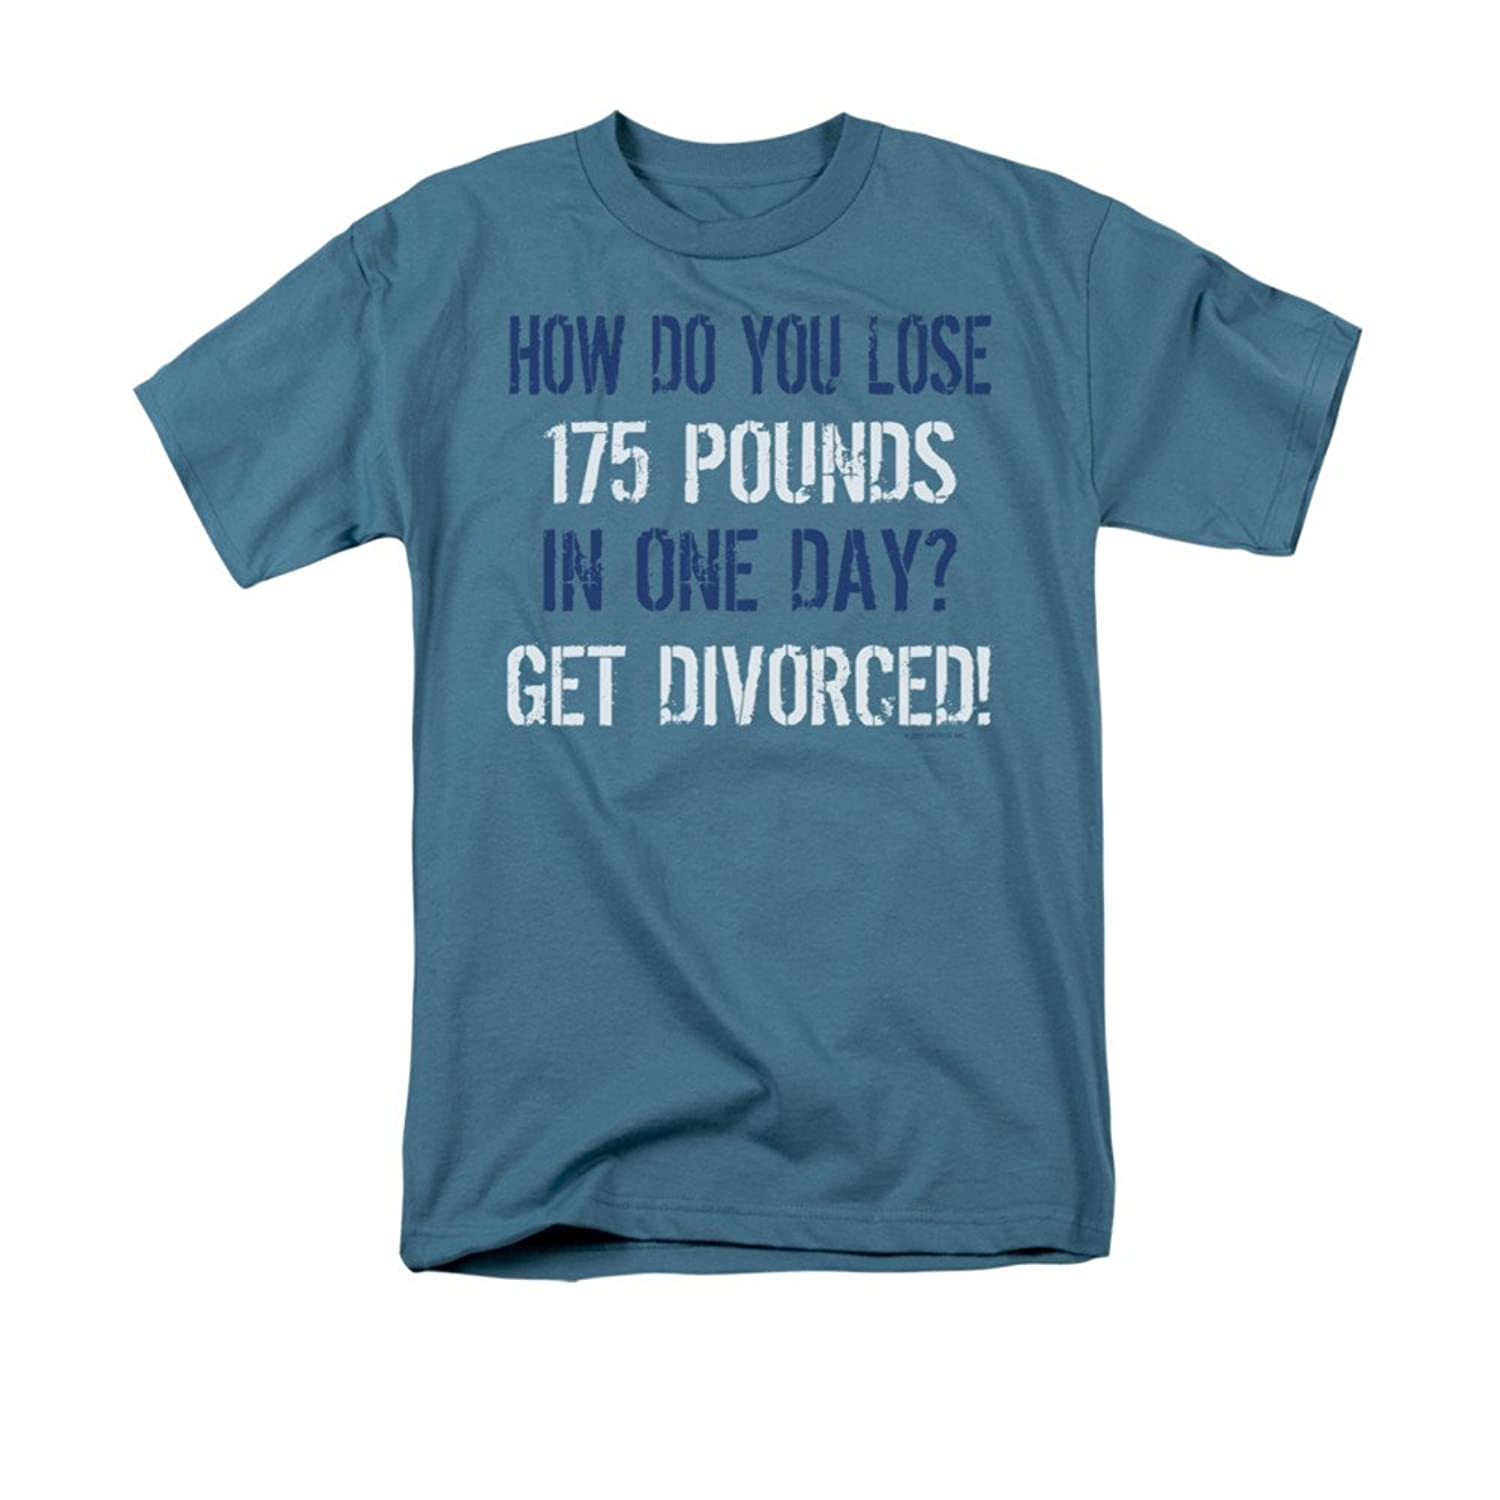 How Do You Lose 175 Pounds In One Day? Get Divorced Funny Saying Adult T-Shirt